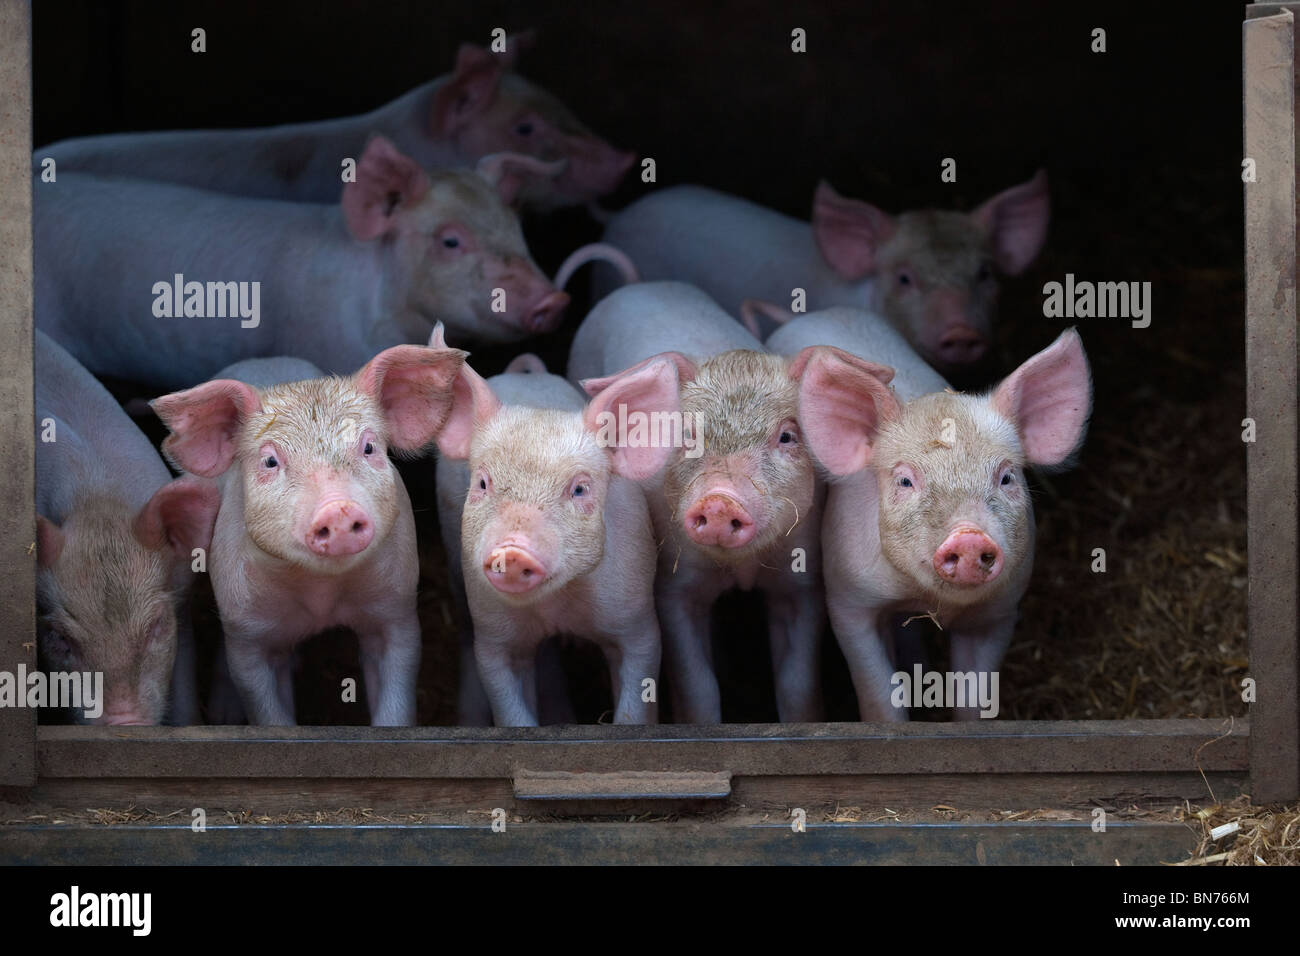 Free range Piglets at 4 weeks old looking from sty - Stock Image